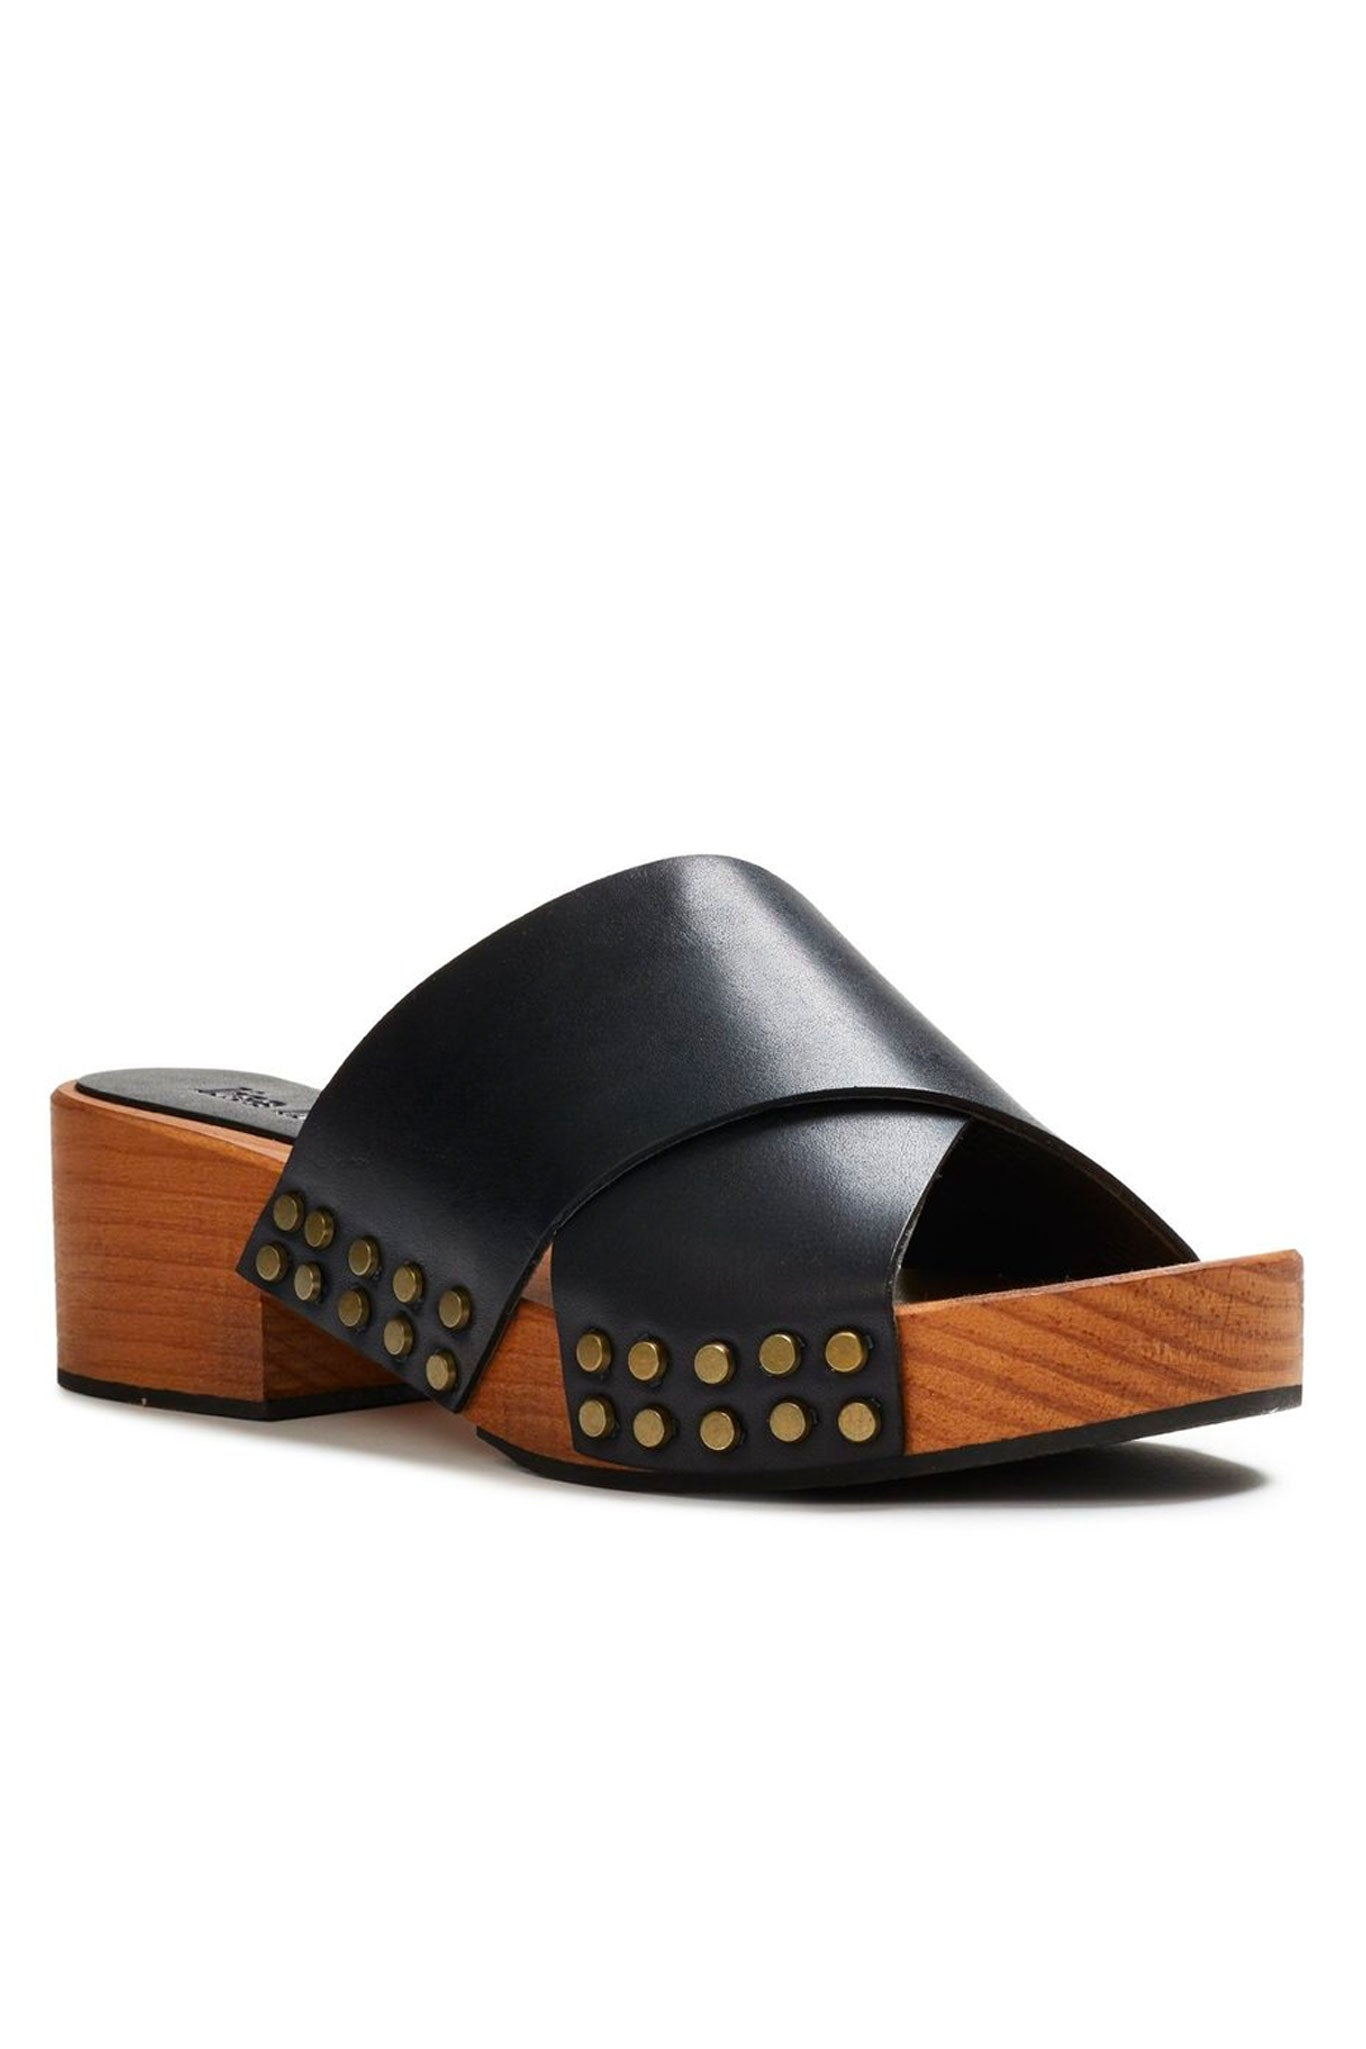 lisa b. Criss Cross Sandal - Black